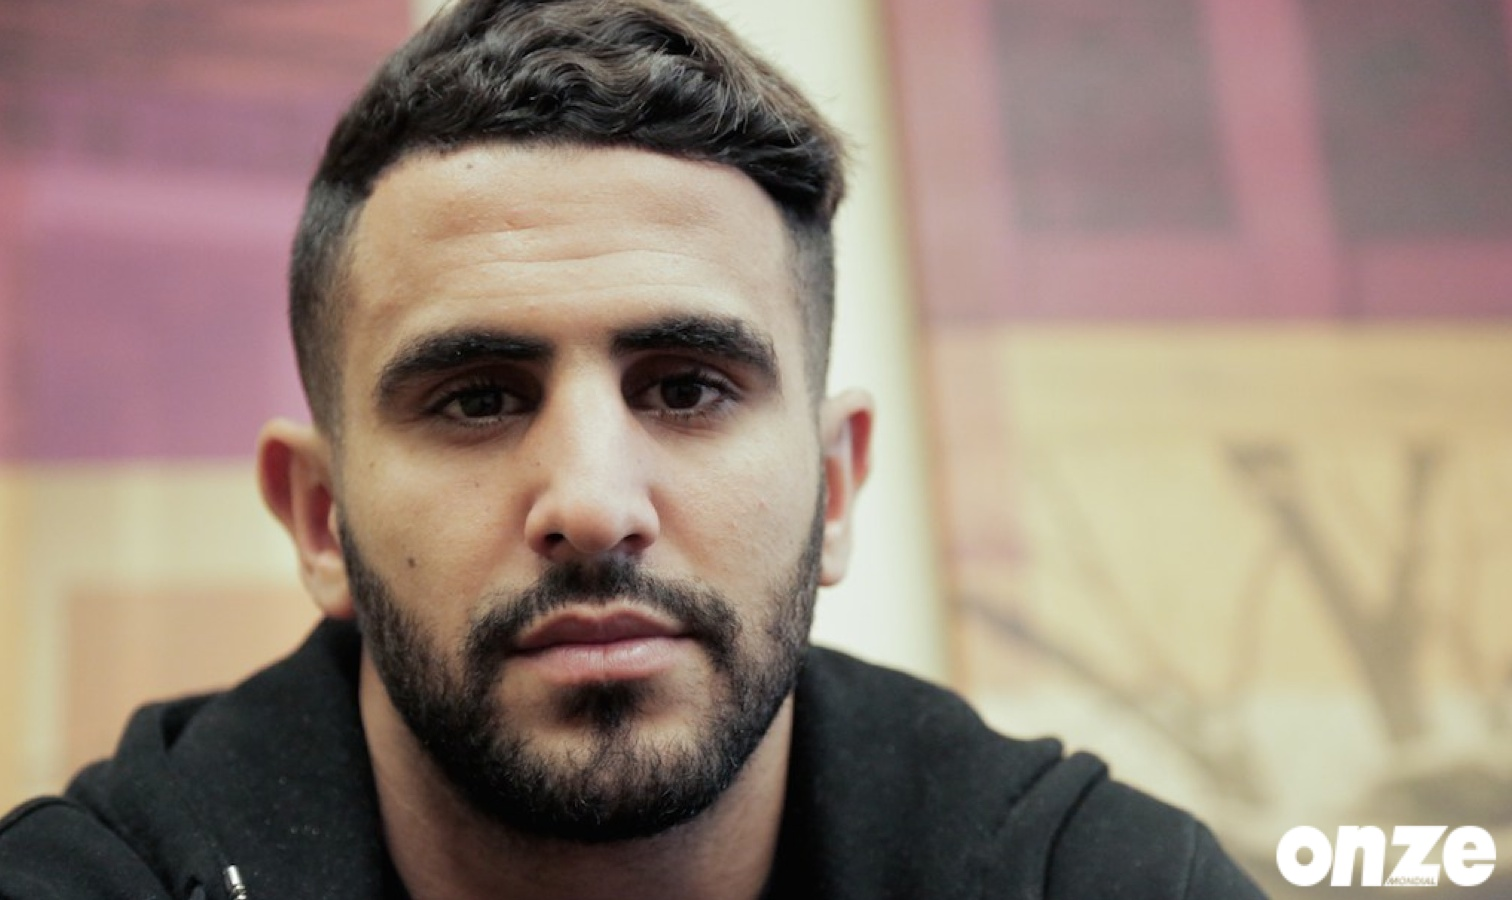 mahrez civil gros plan